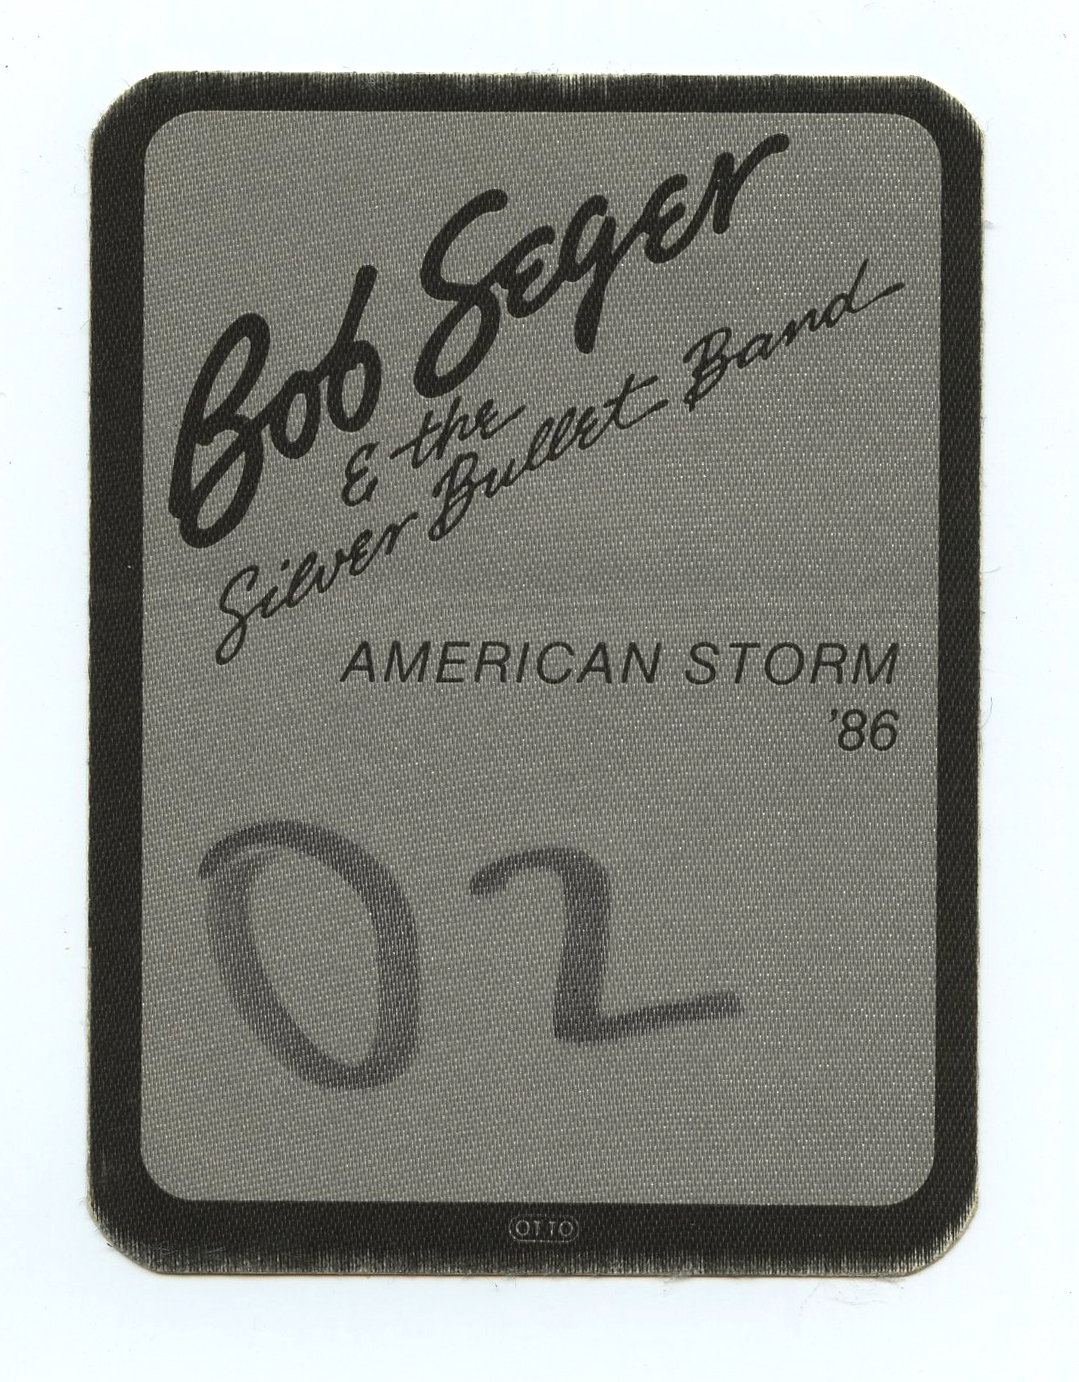 Bob Seger & The Silver Bullet Band Backstage Pass 1986 American Storm Tour